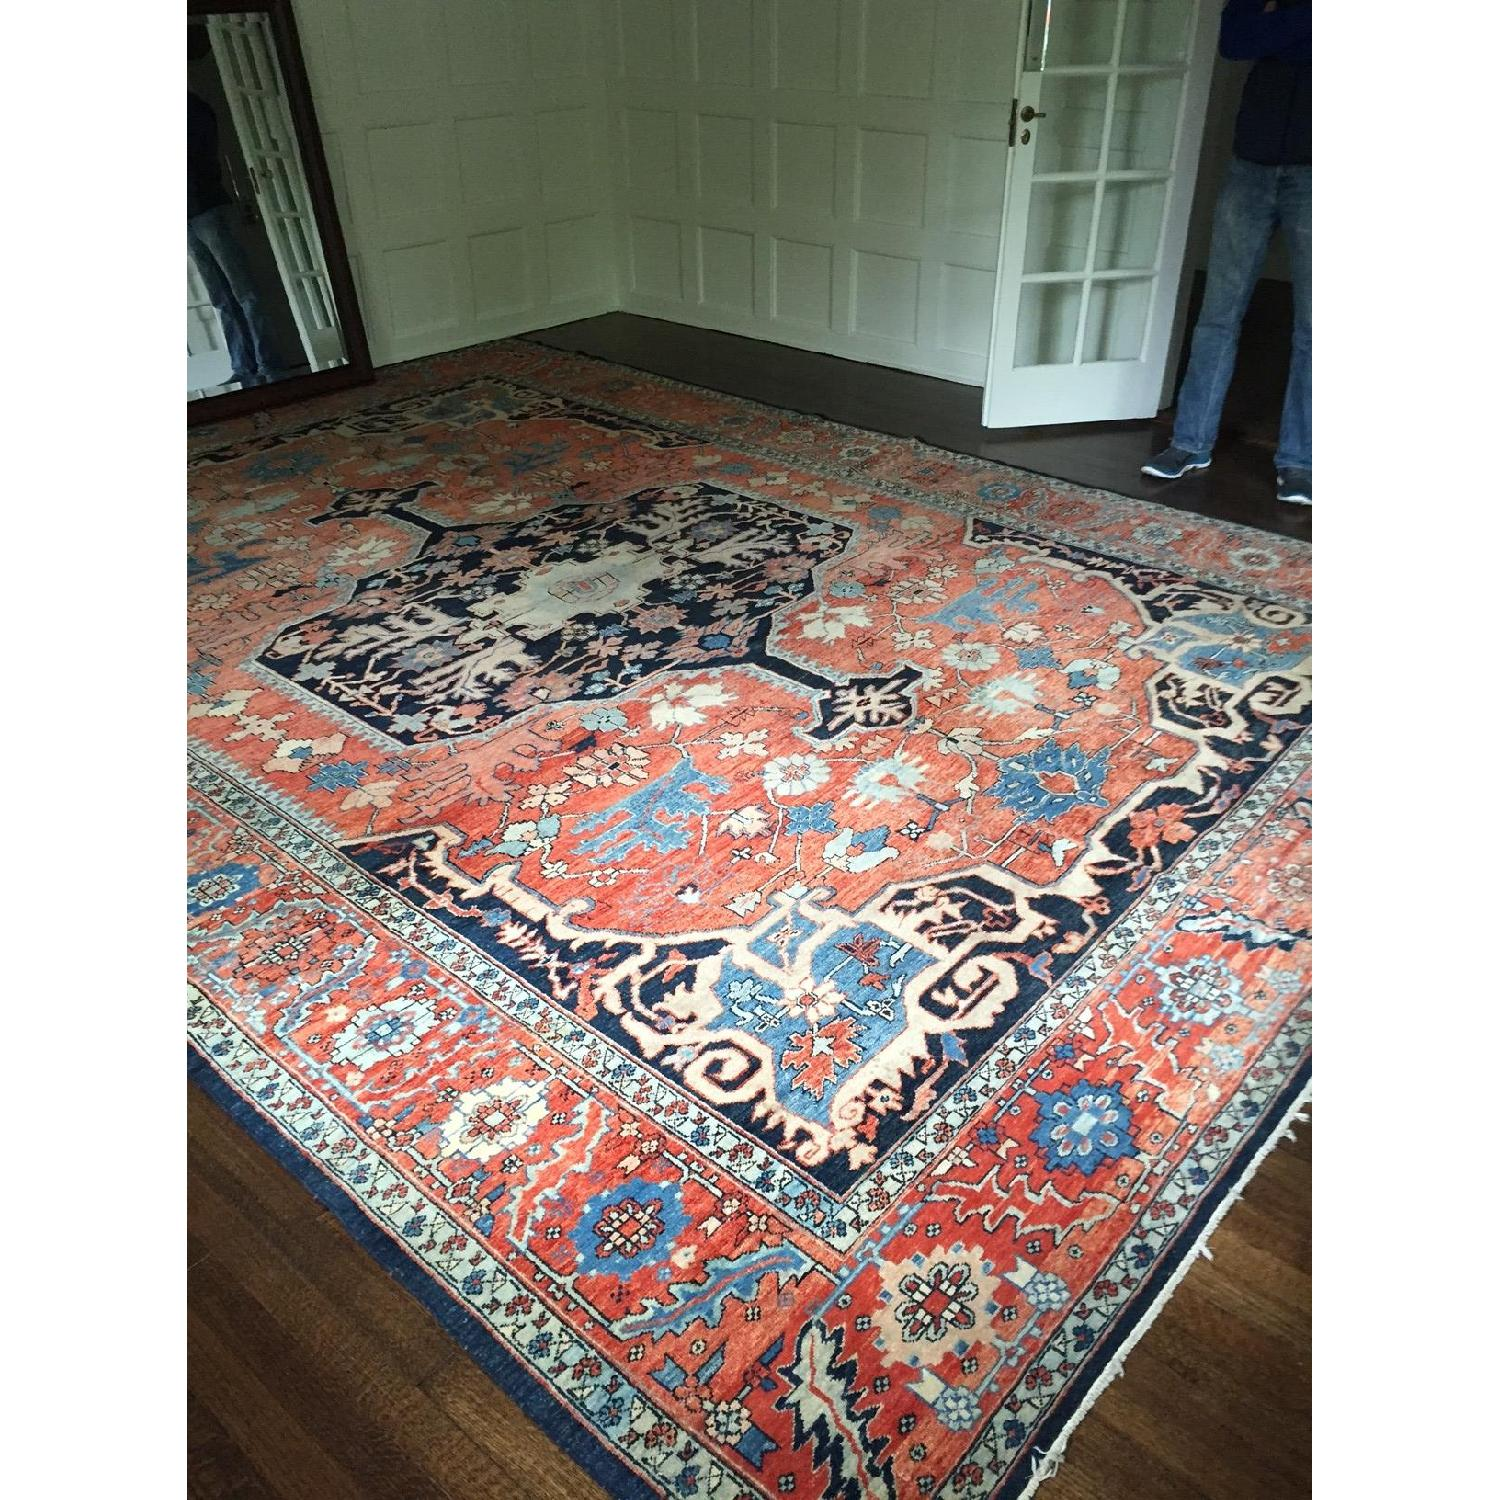 ABC Carpet & Home Woven Legends Turkish Rug - image-14